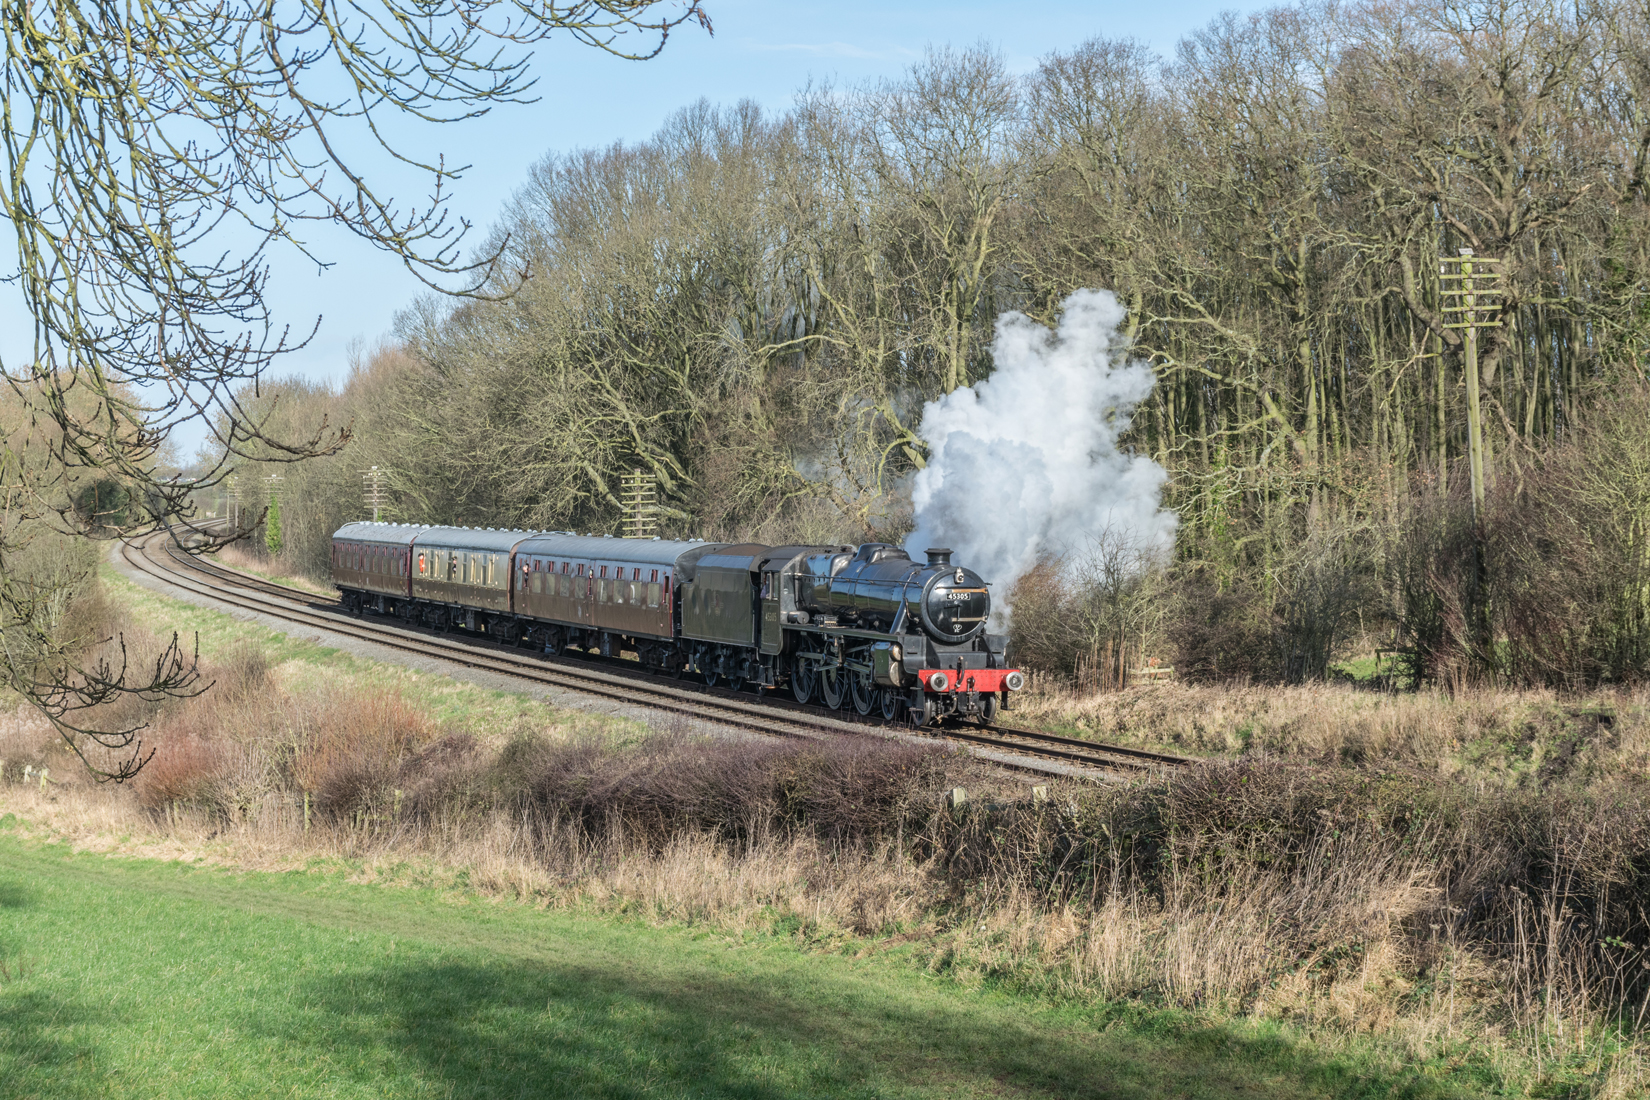 LMS Stanier Class 5 no 45305 at Kinchley Lane